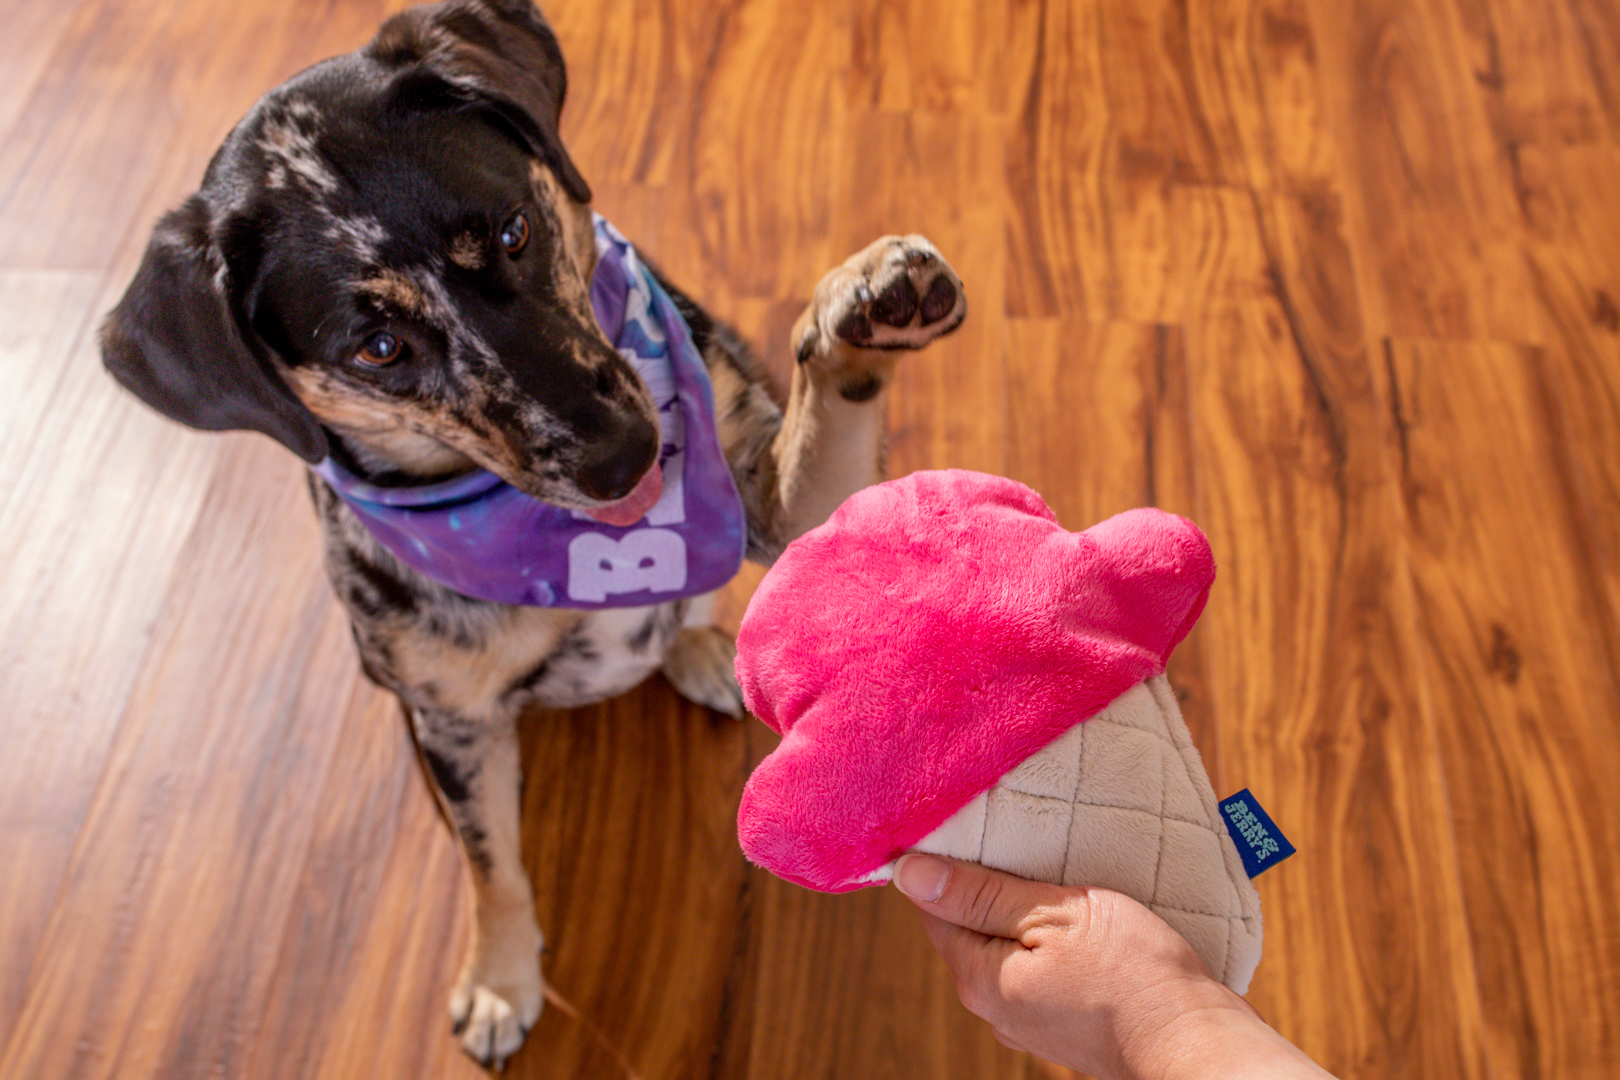 Ben & Jerry's has partnered with like-minded suppliers to offer pet accessories like this plush cone toy stuffed with recycled fill. Limited quantities are available at www.store.benjerry.com